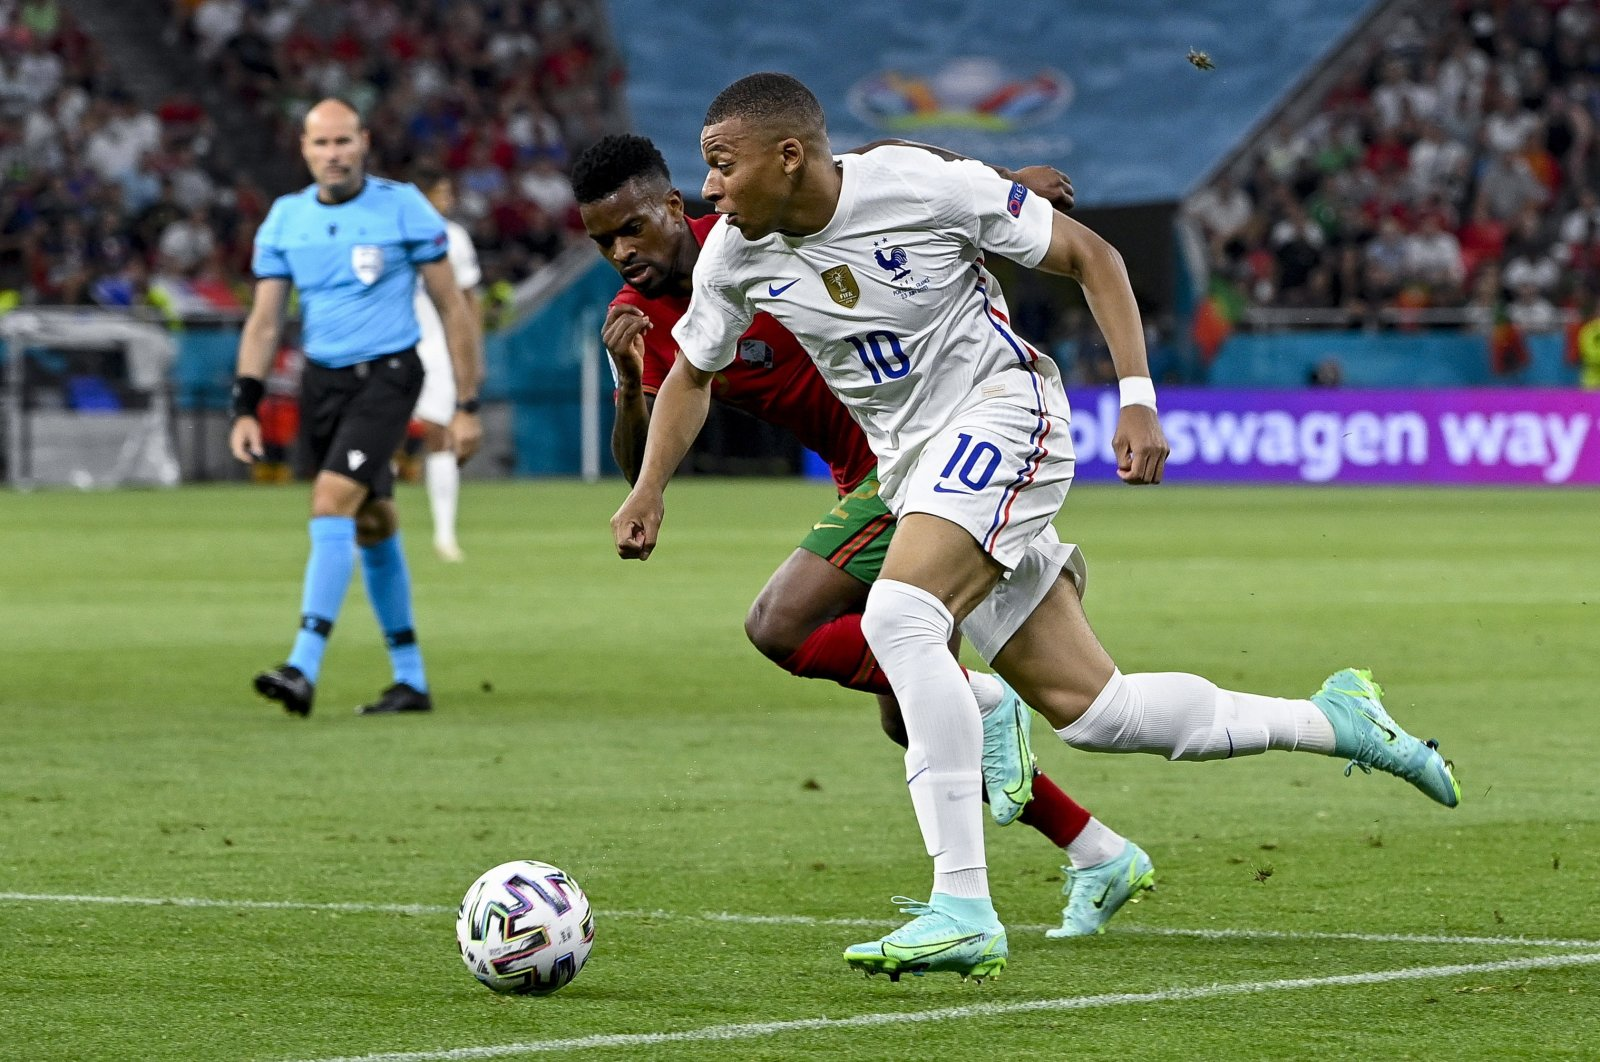 France's Kylian Mbappe (R) is challenged by Portugal's Nelson Semedo (L) for the ball during their Euro 2020 Group F match at Puskas Arena in Budapest, Hungary, June 23, 2021. (EPA Photo)